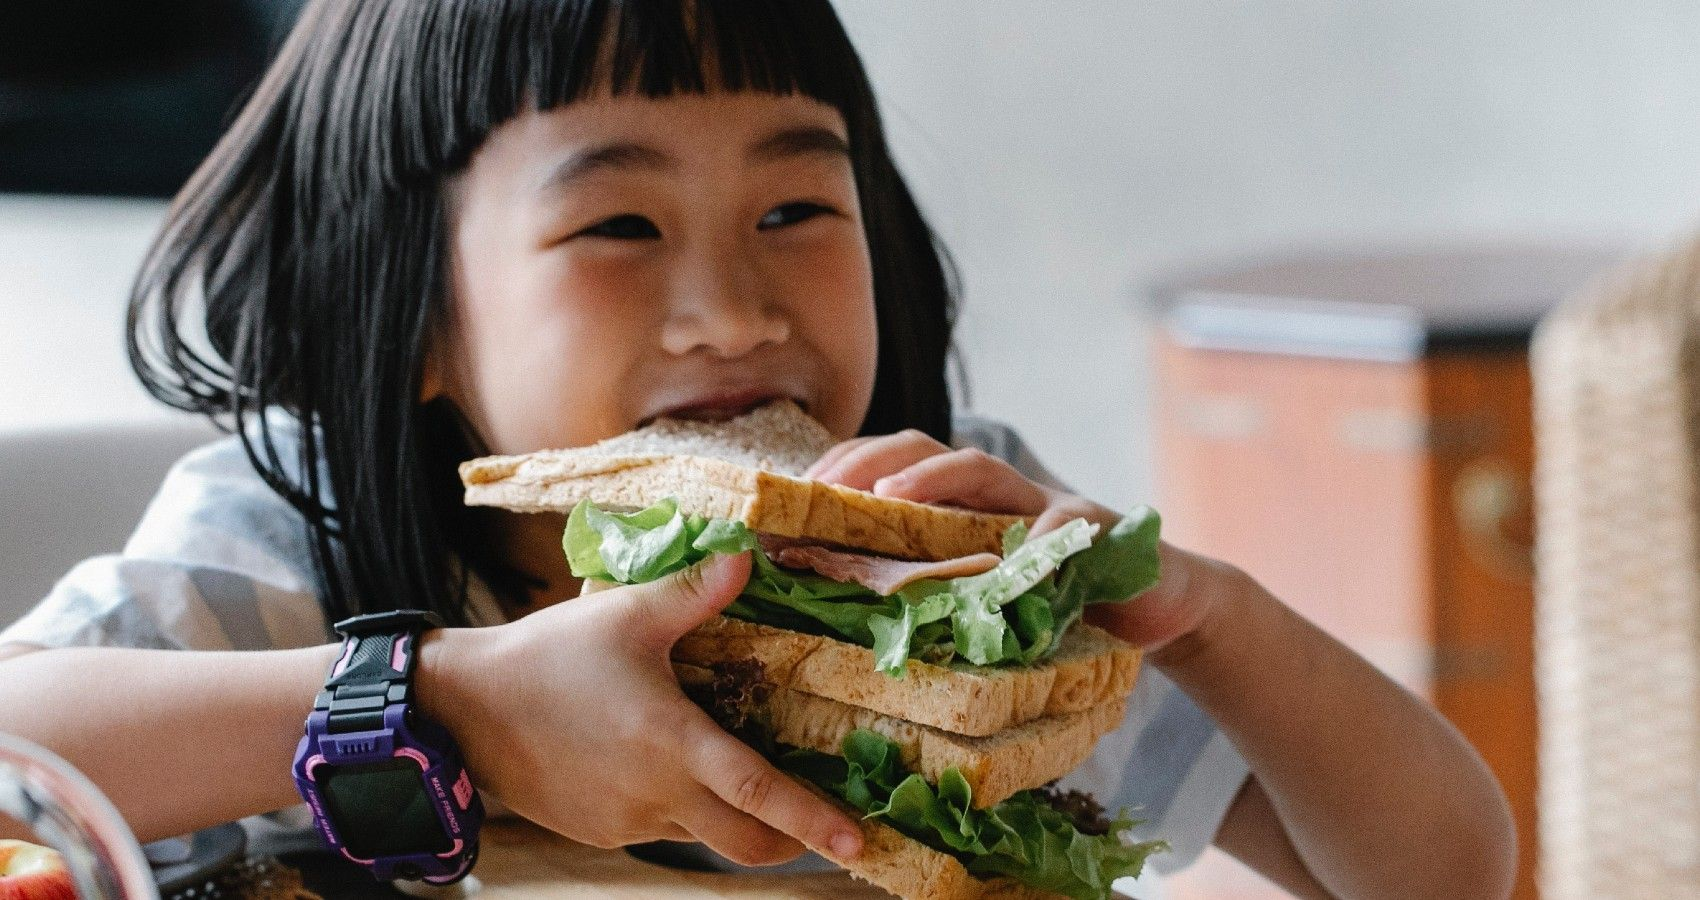 Too Much Food Is Causing Weight Gain In Kids, Says Study